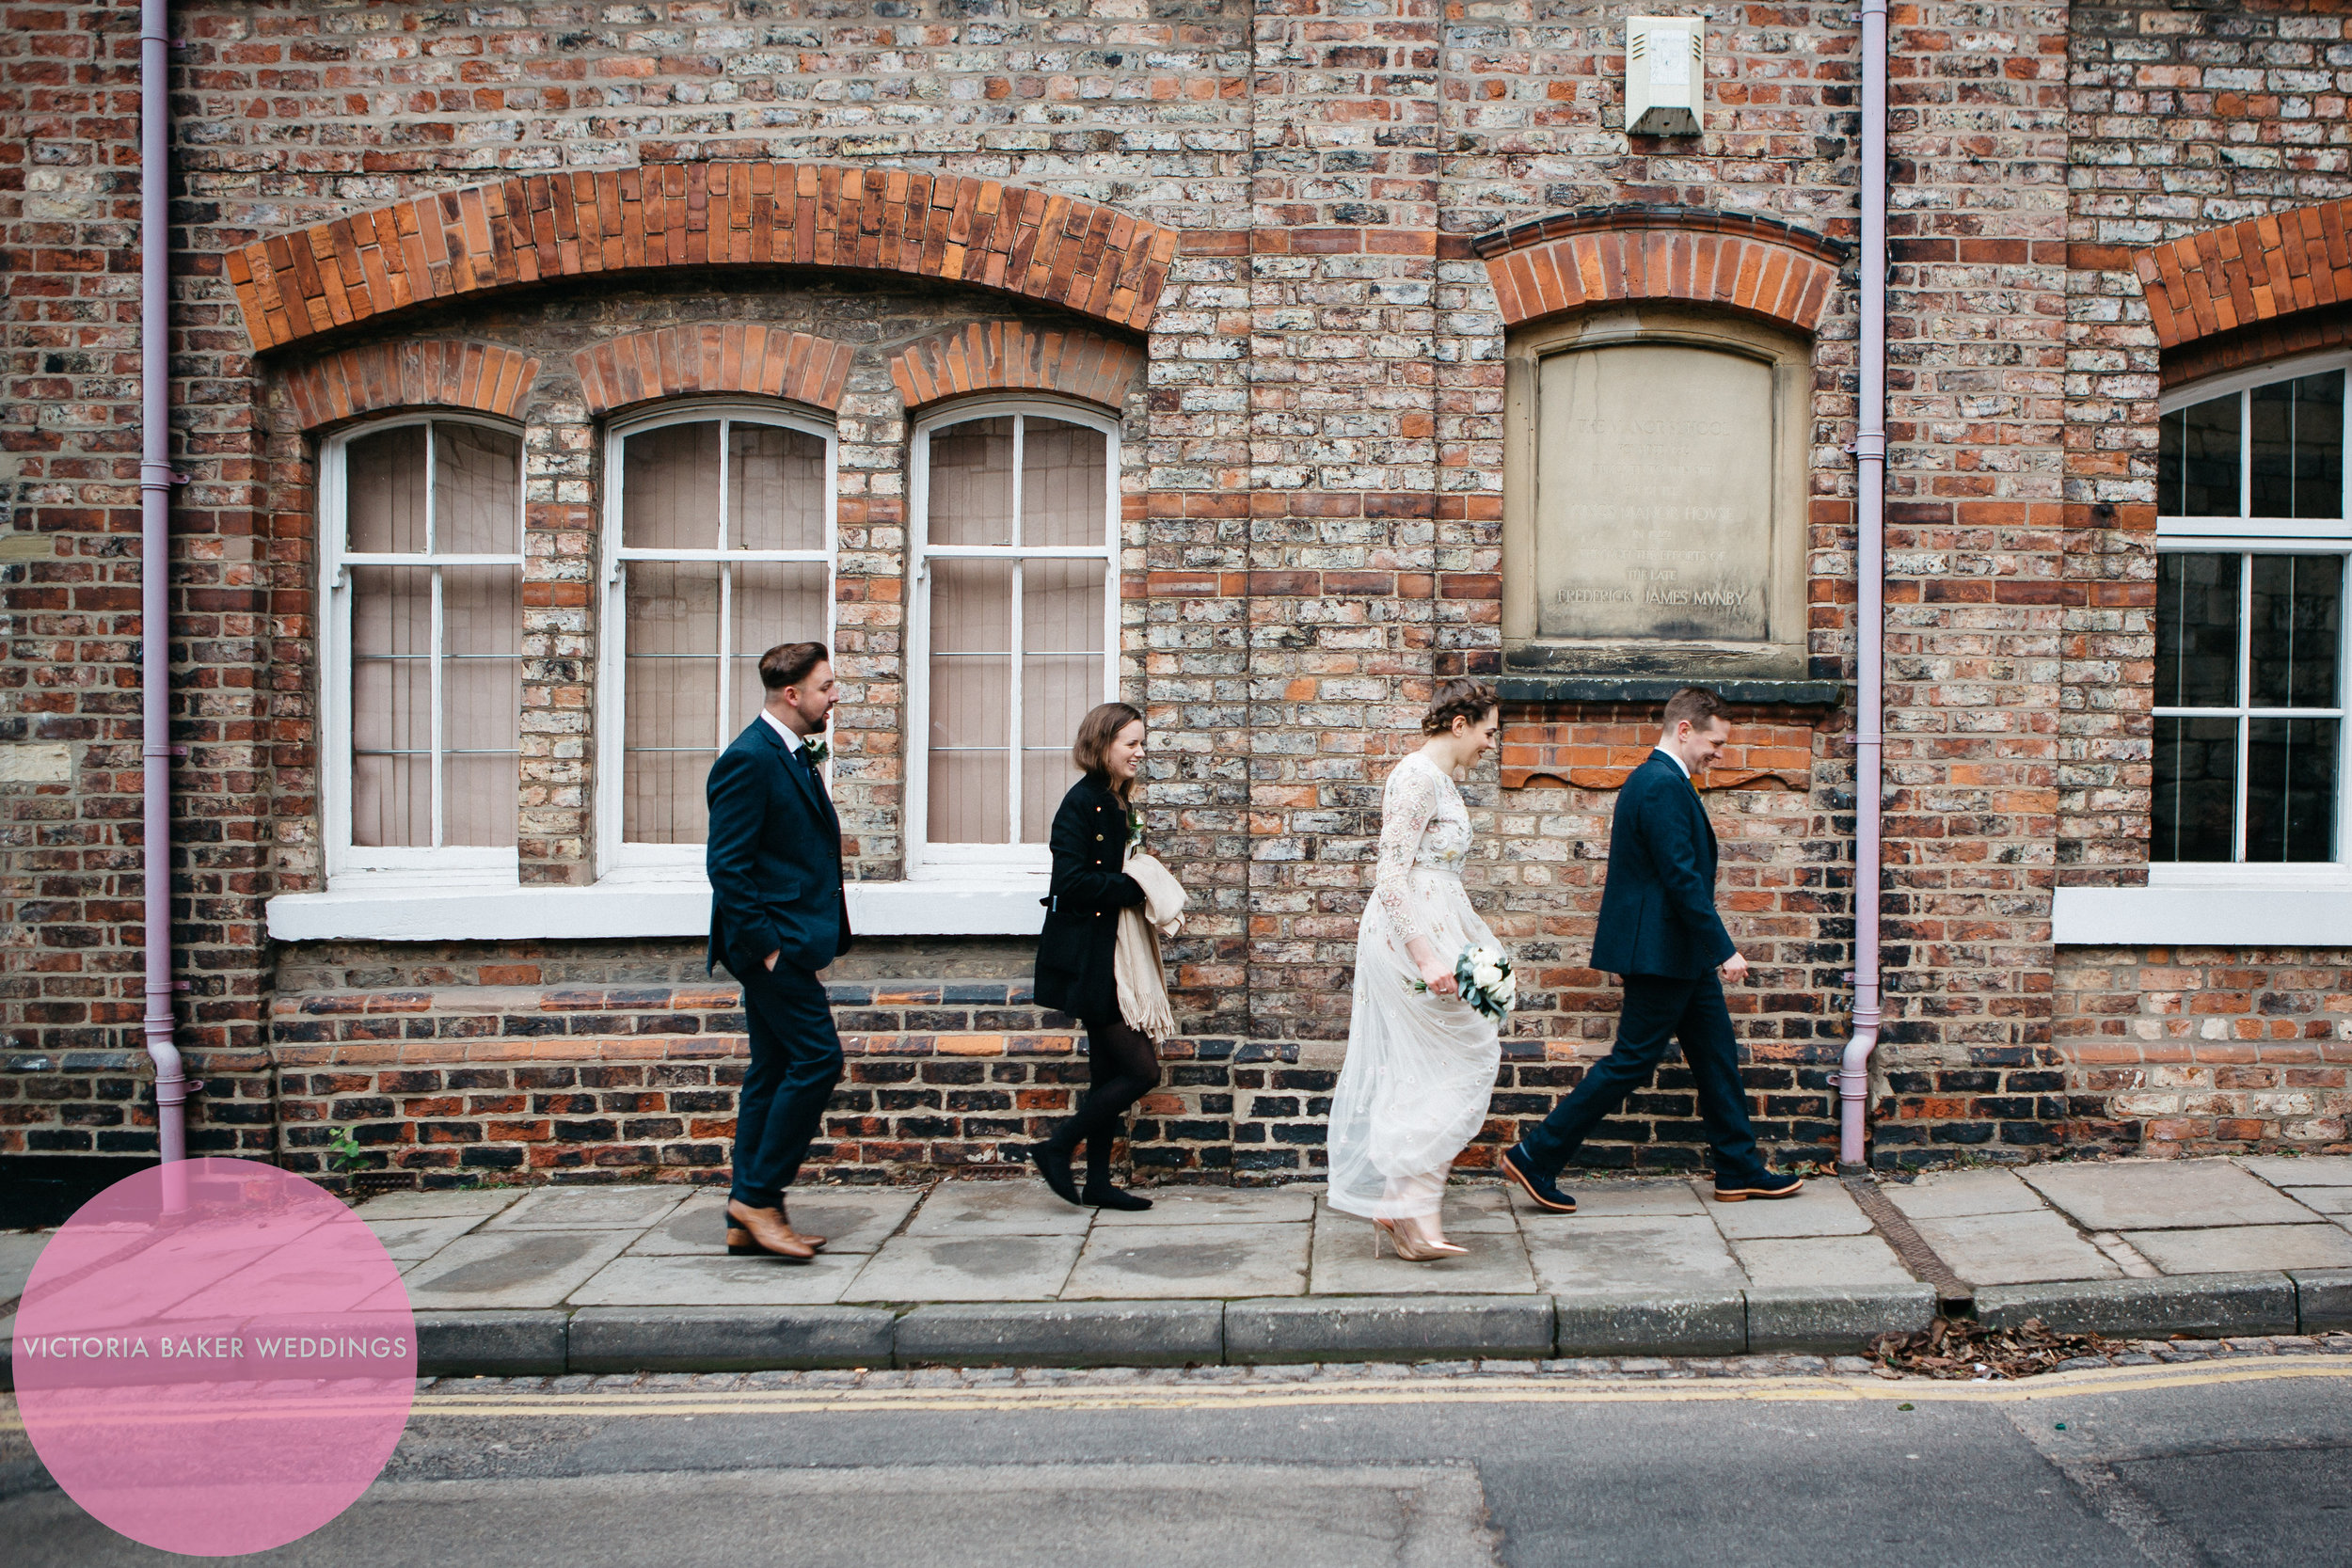 Bridal party walking - textured wall